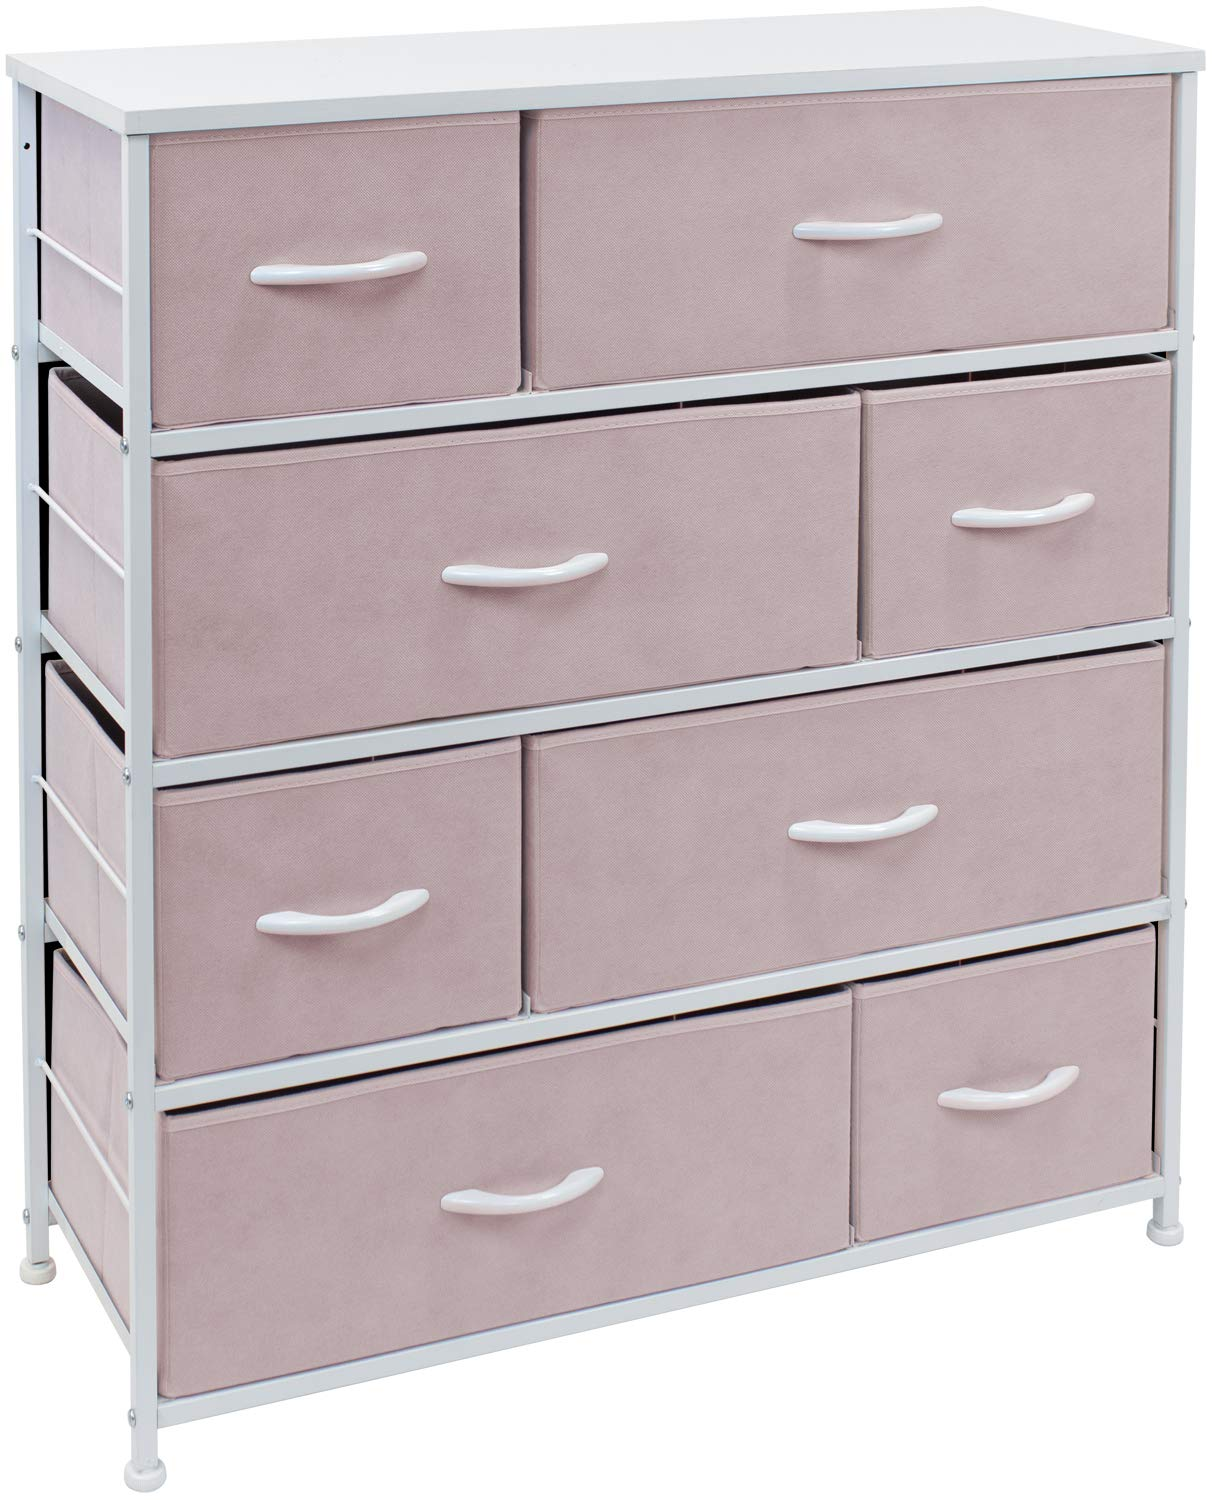 Sorbus Dresser with 8 Drawers - Bedside Furniture & Night Stand End Table Dresser for Home, Bedroom Accessories, Office, College Dorm, Steel Frame, Wood Top (Pink)